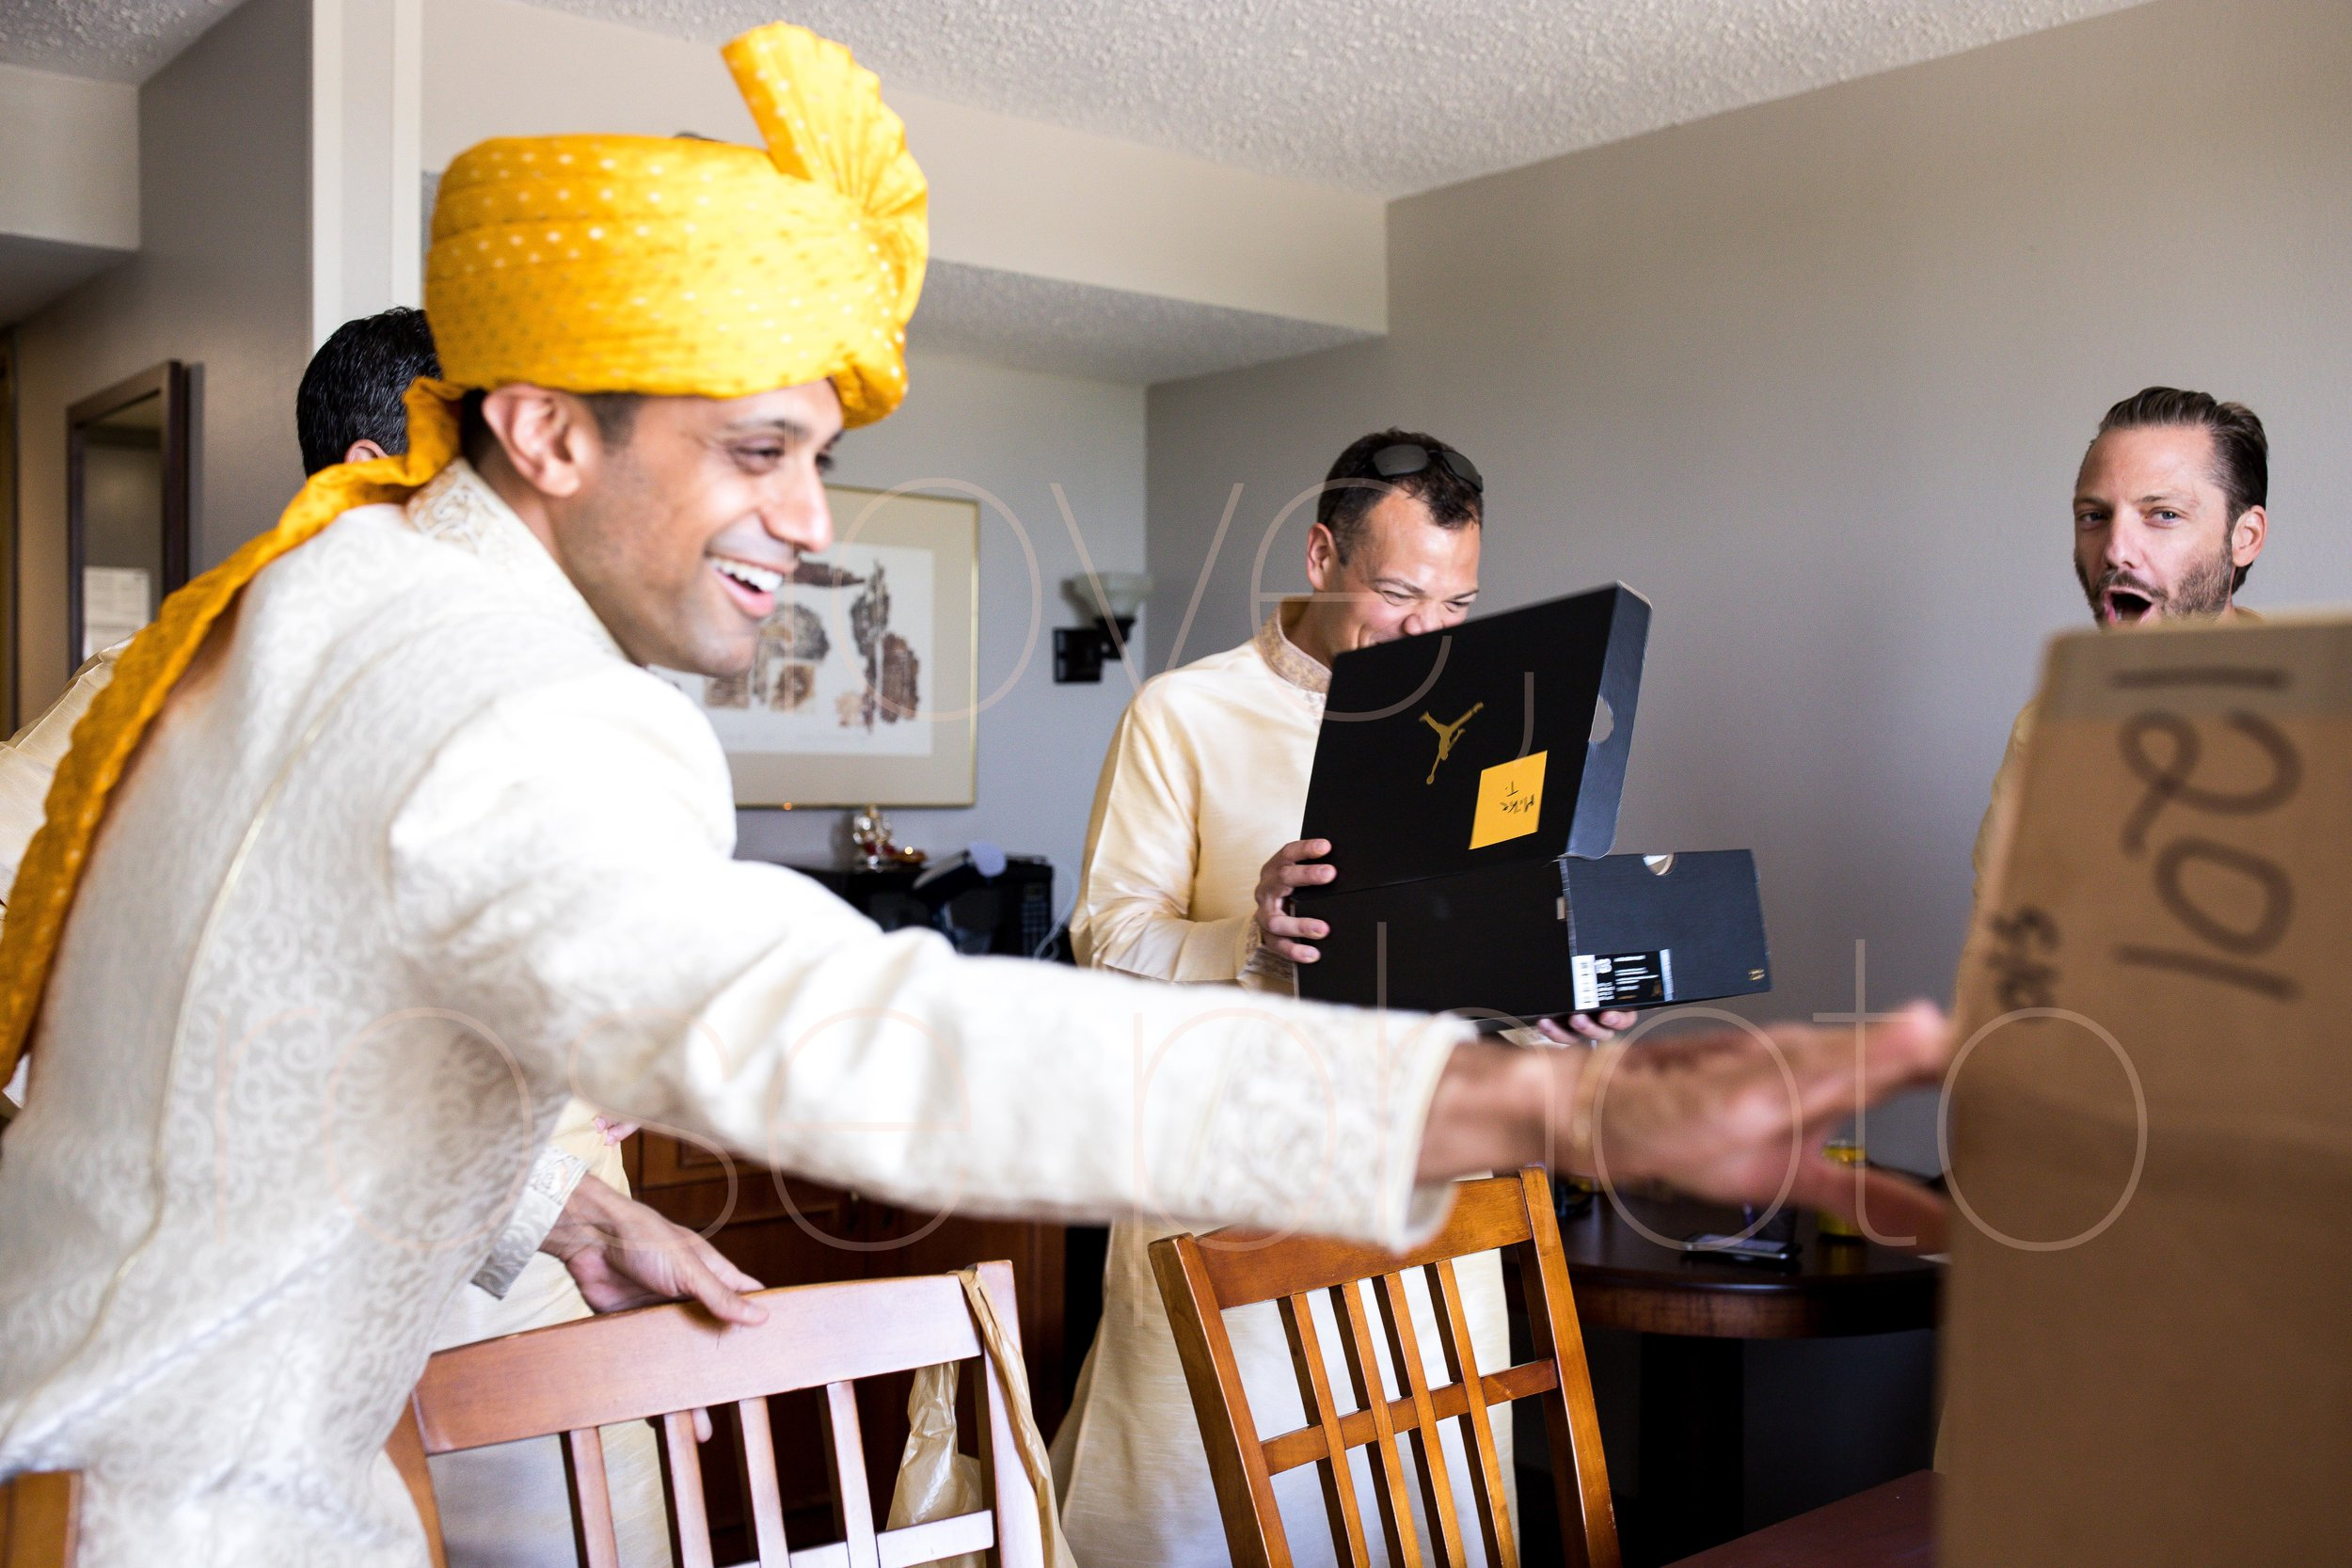 best chicago indian wedding photographer rose photo video collective-42.jpg